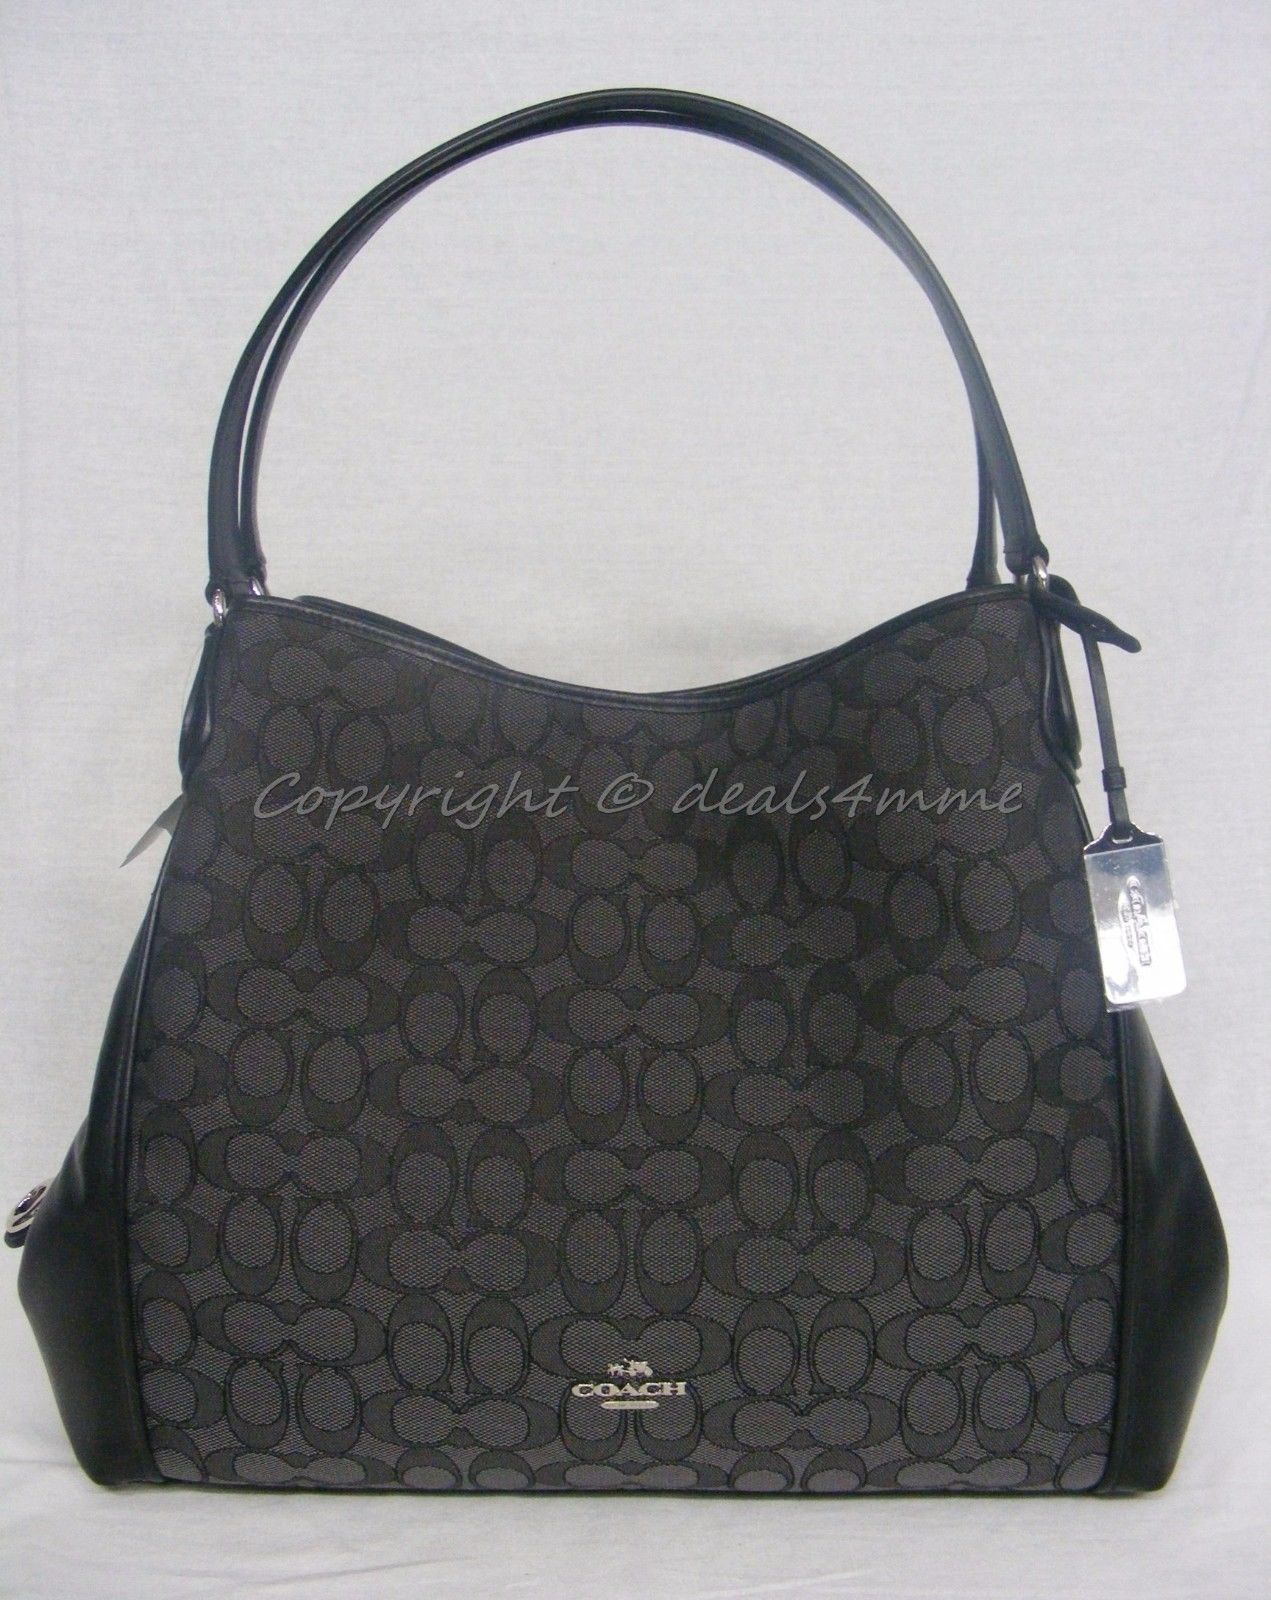 S l1600. S l1600. Previous. NWT Coach 33523 Edie Shoulder Bag In Signature  Jacquard Silver Black Smoke Black 14ed059af1518